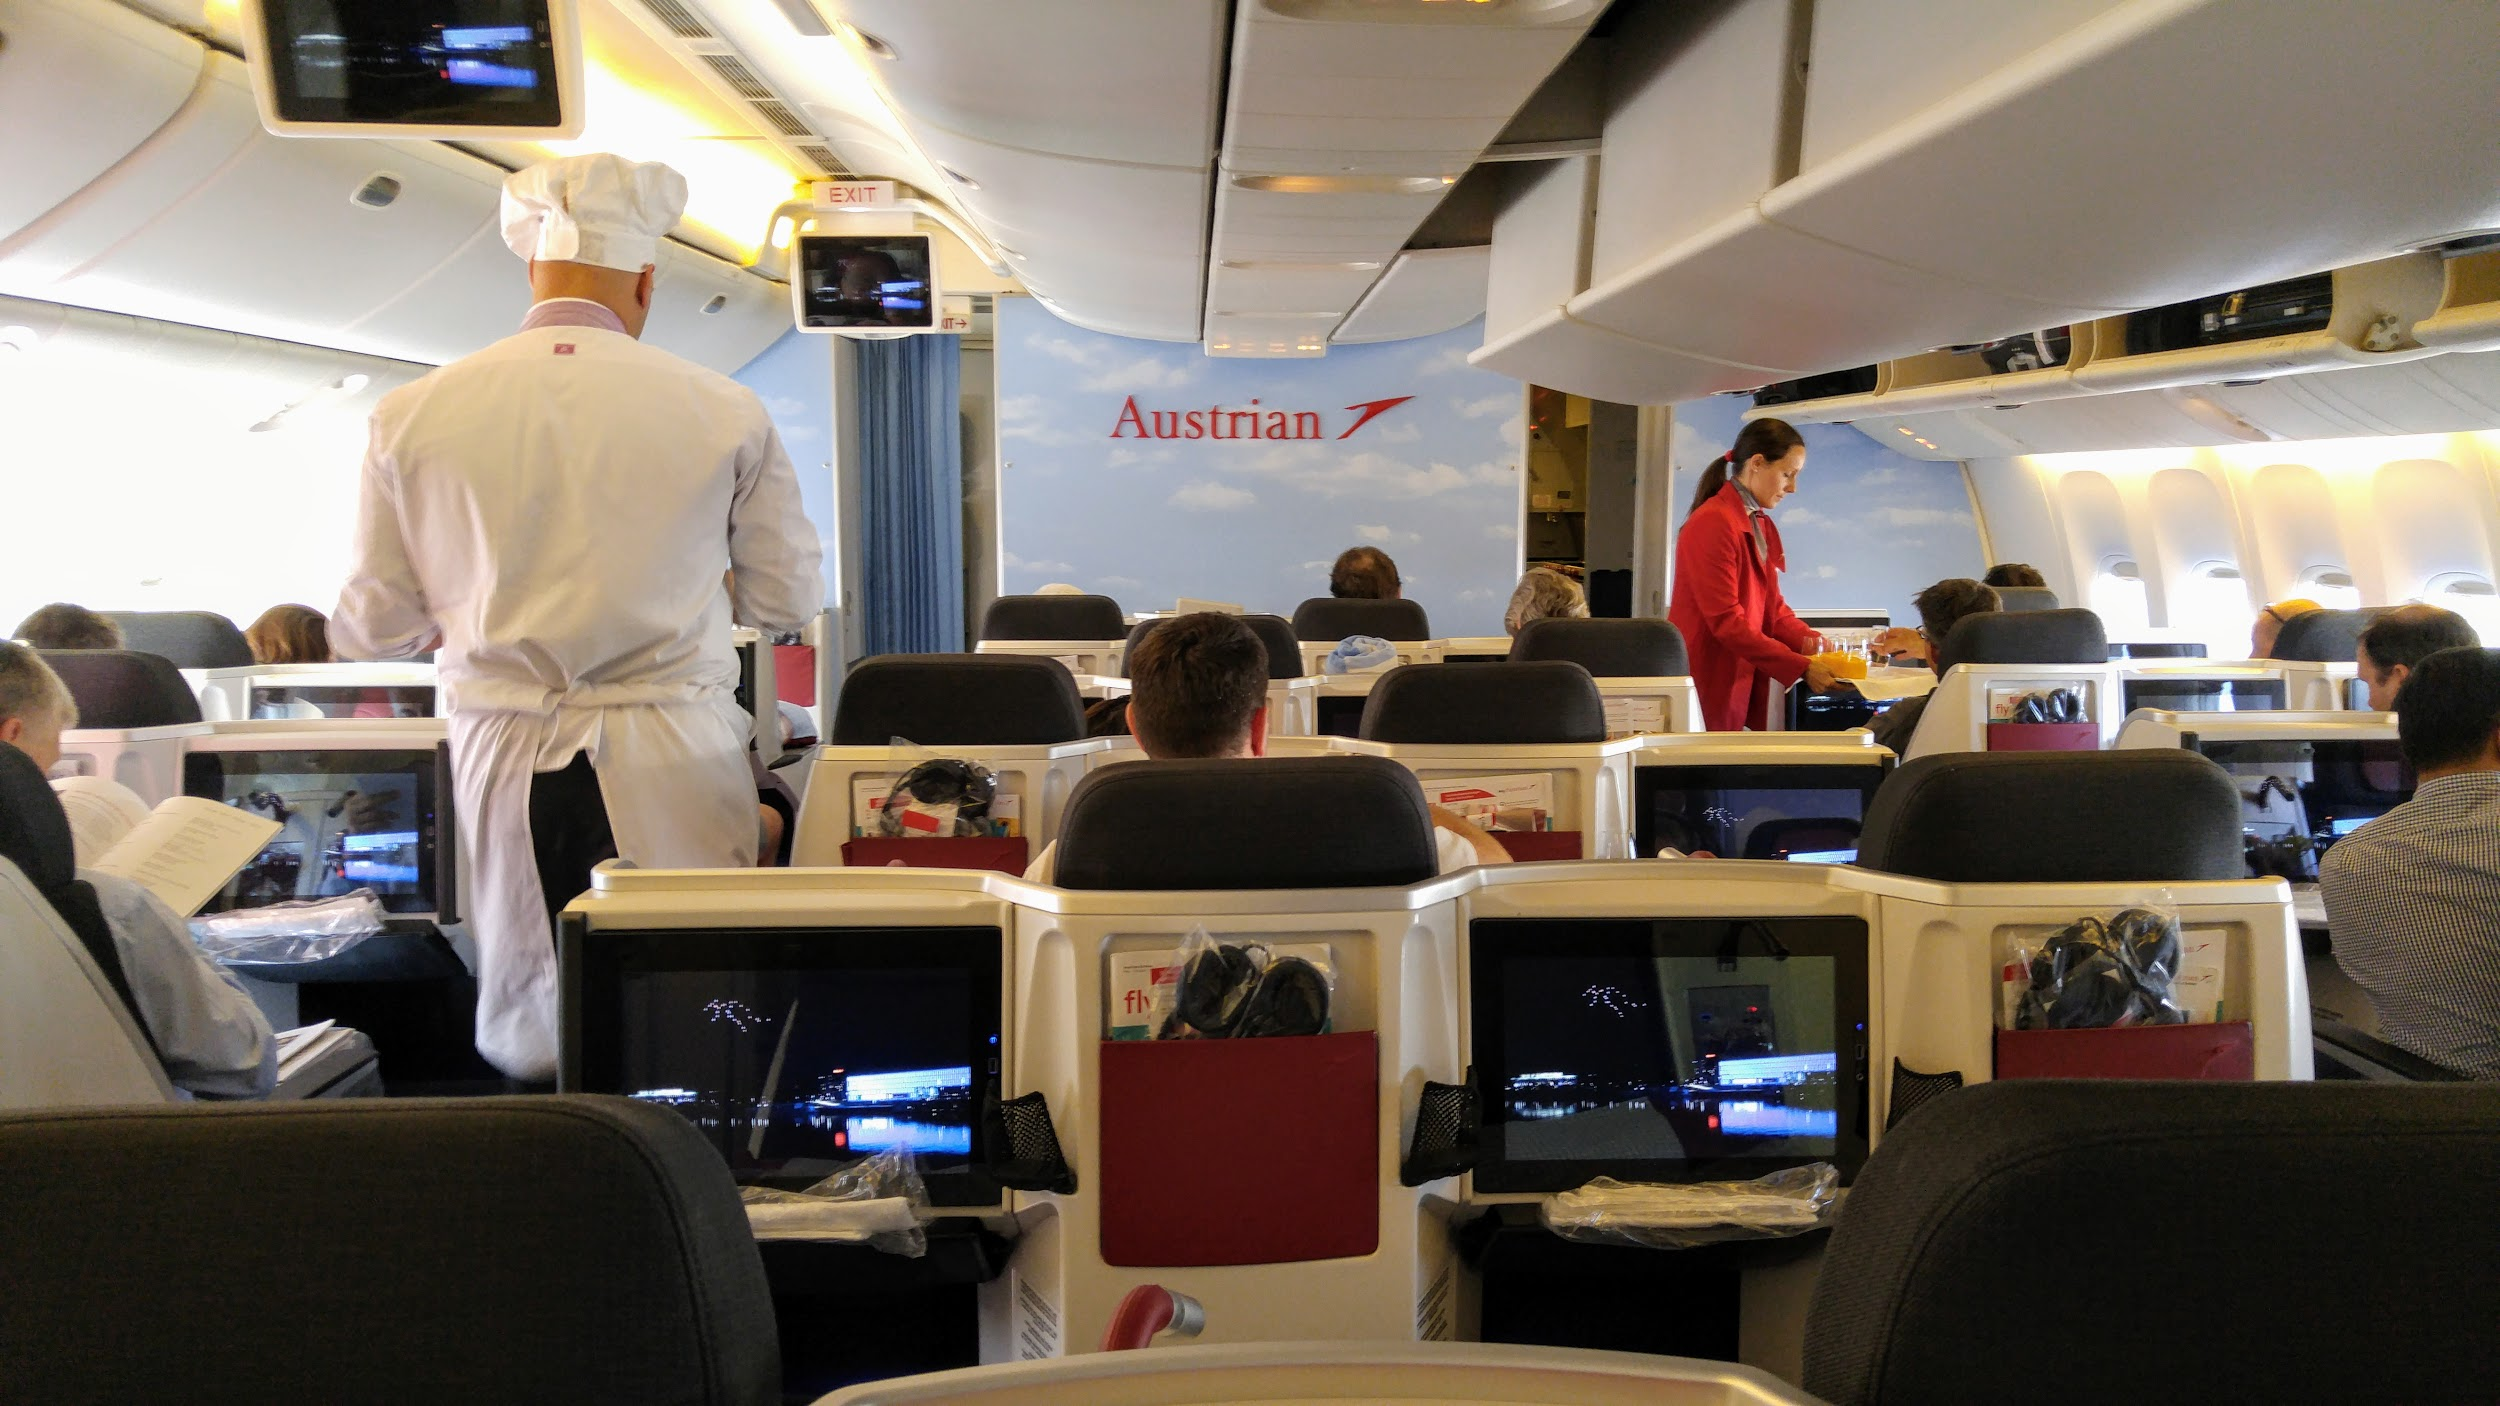 Easy Go Traveler, Austrian, Austrian Airlines, First Class, Business Class, Luxury Travel, Points and Miles